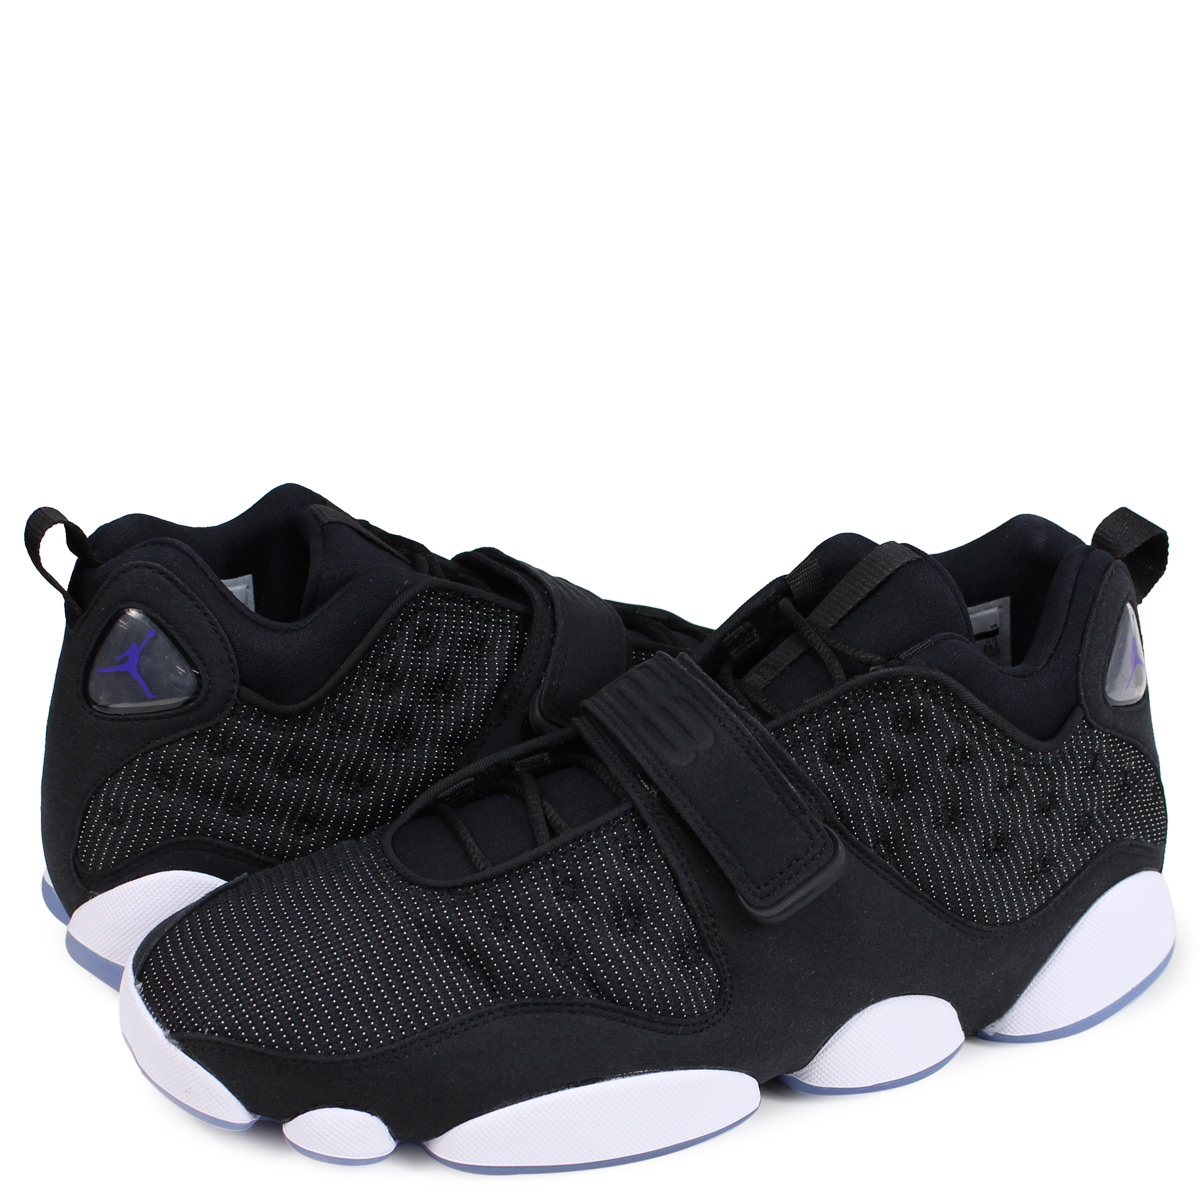 9b0837b3fdf Nike NIKE Air Jordan sneakers men AIR JORDAN BLACK CAT black AR0772-001 ...